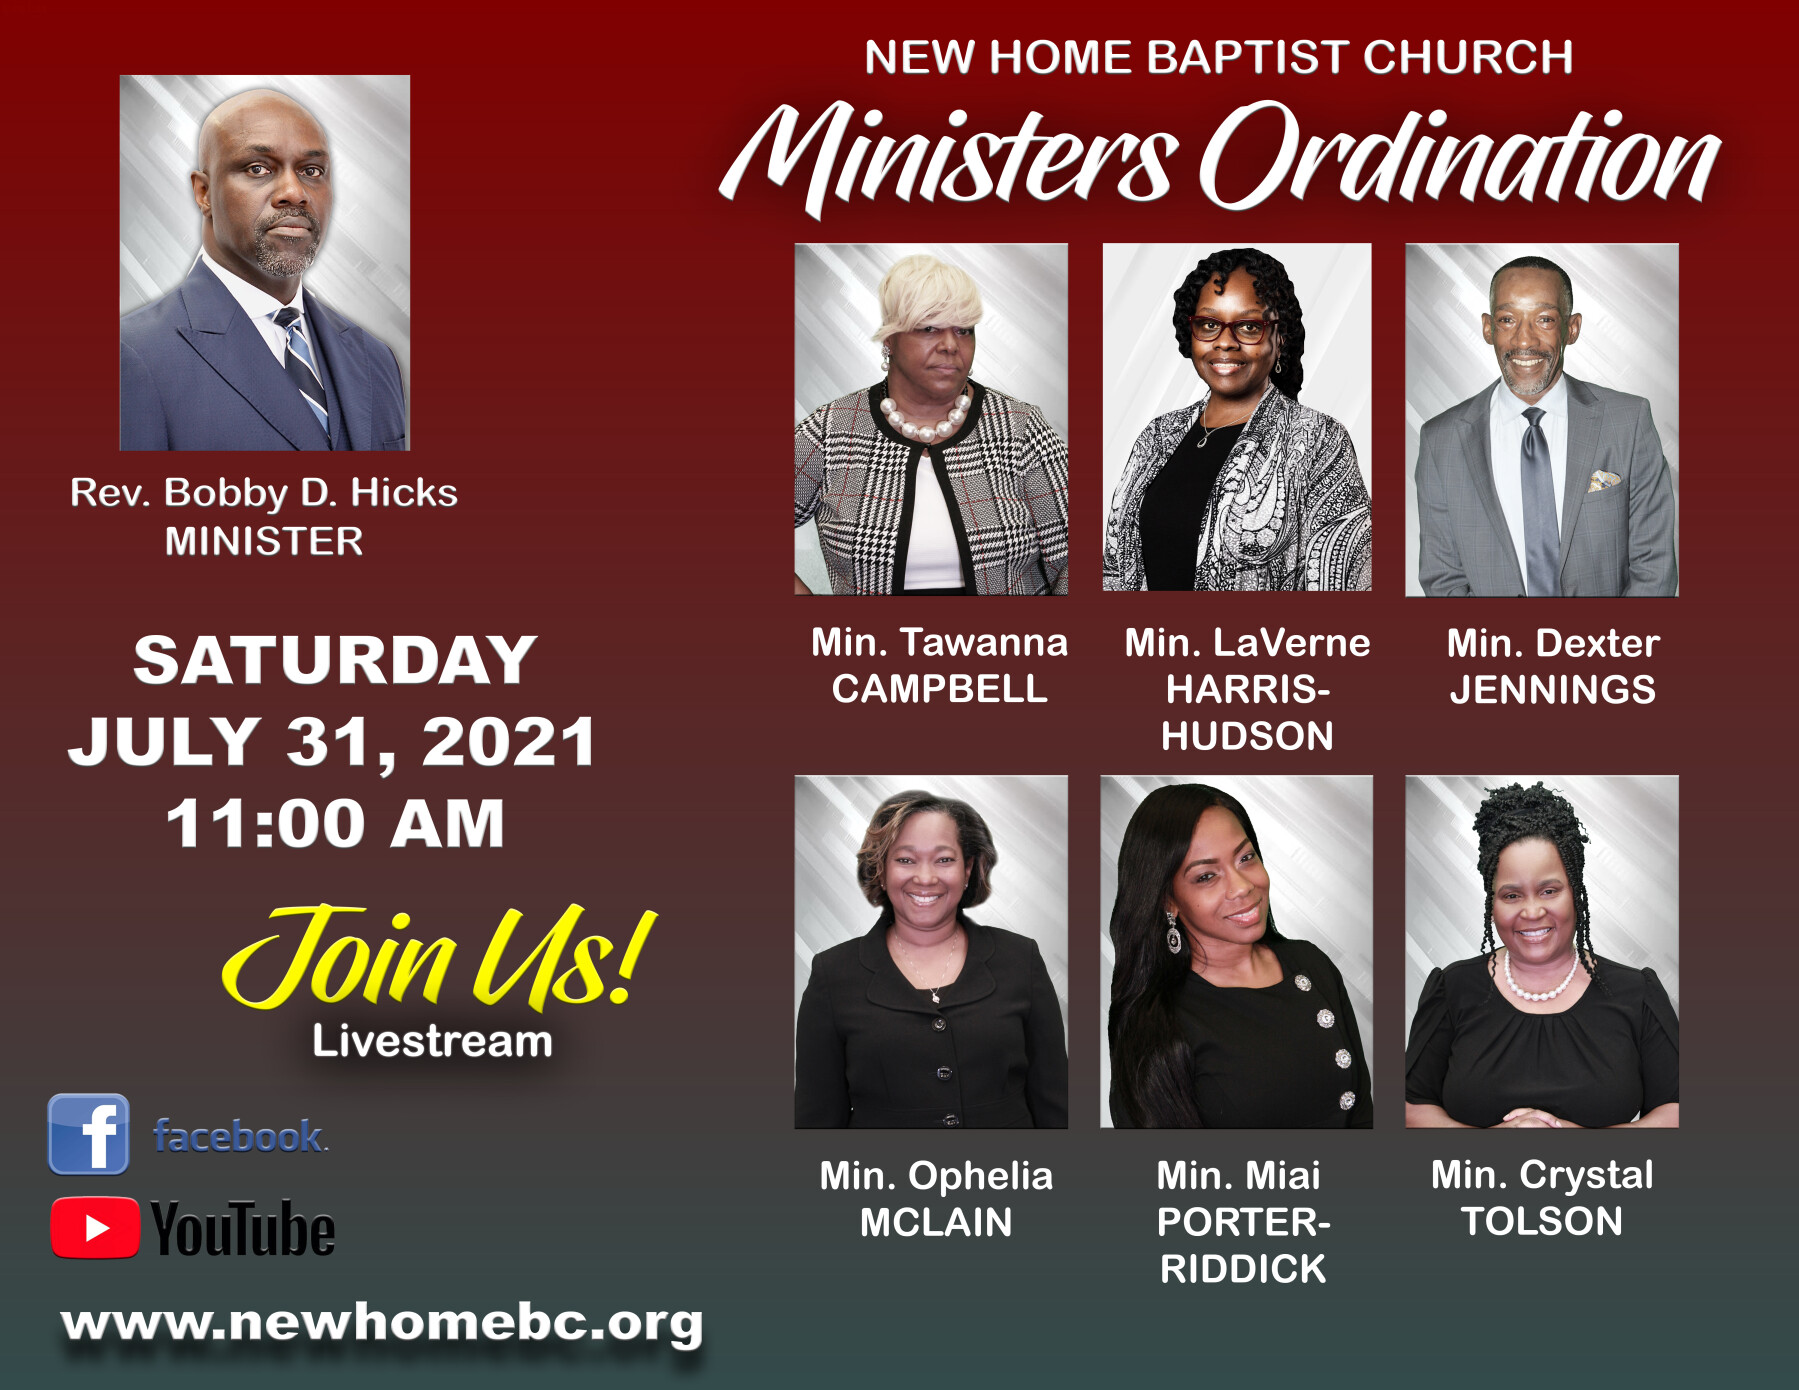 Ministers Ordination Service (11AM)